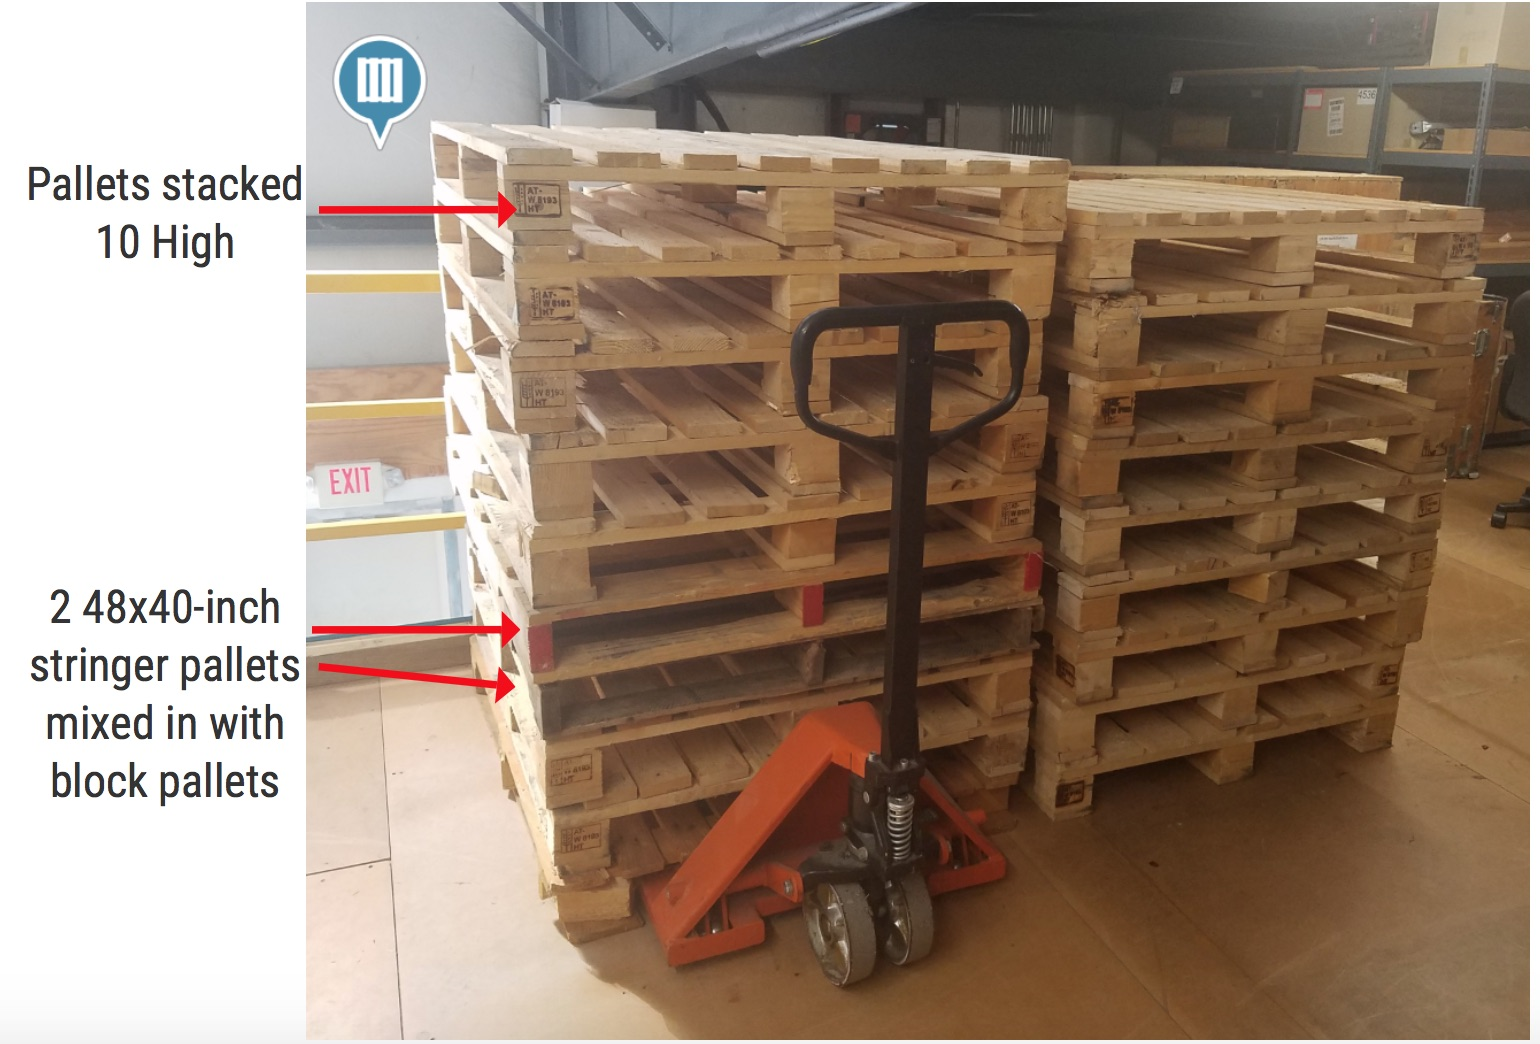 26 pictures analyzing pallet management at businesses for Movable pallets